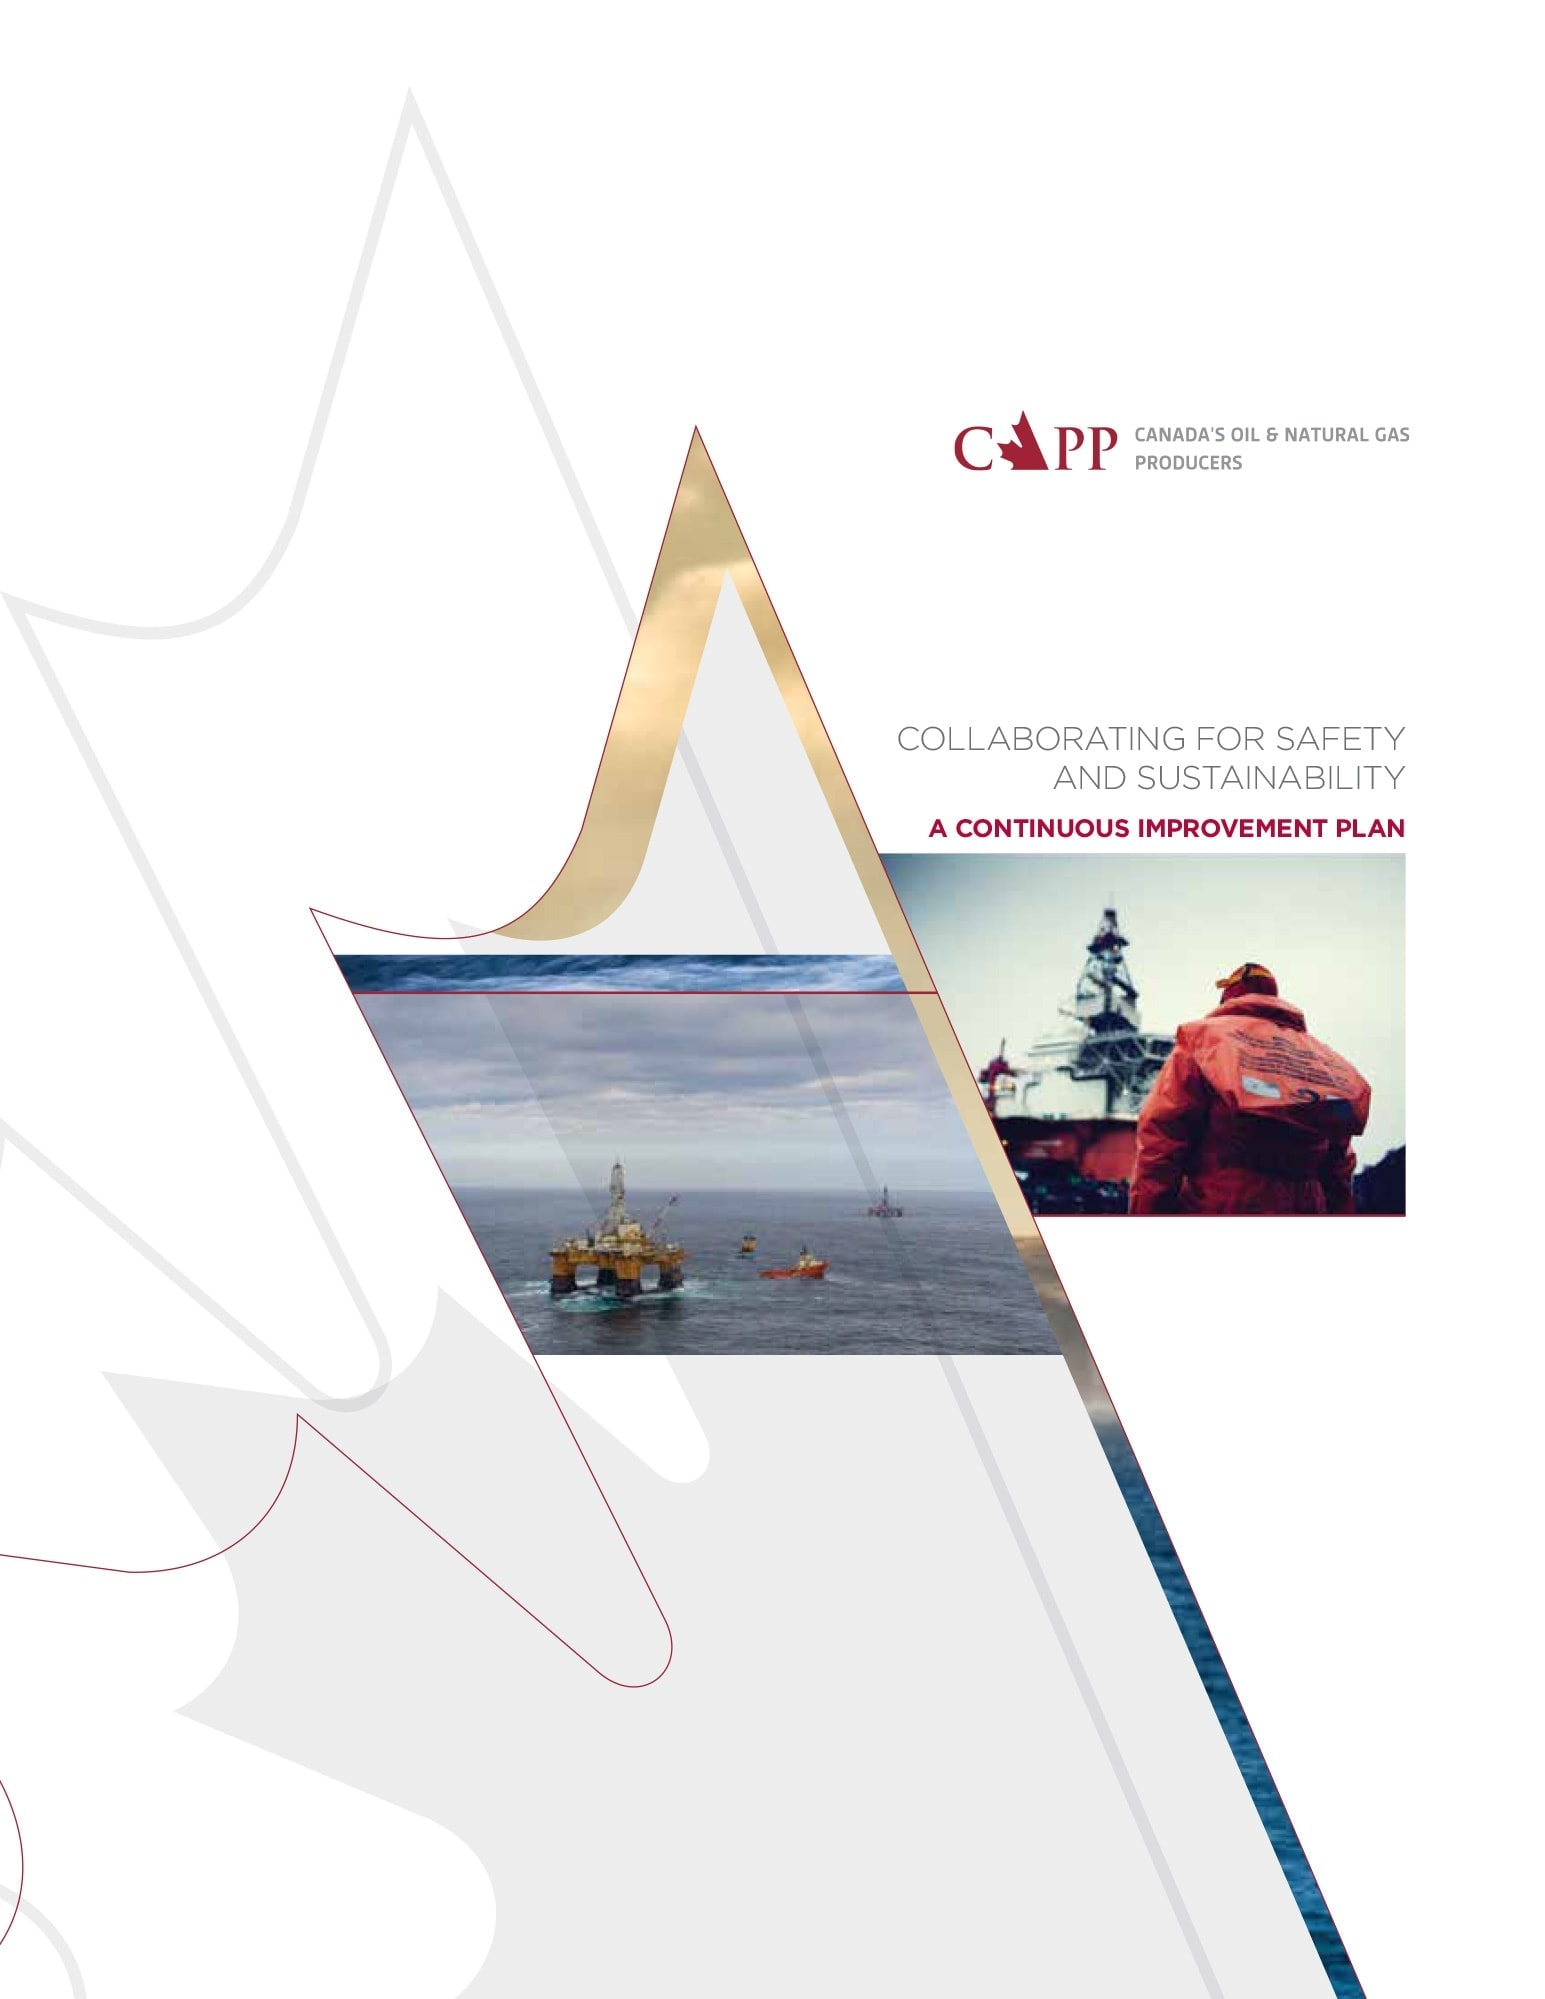 Atlantic Canada Safety and Sustainability Cover